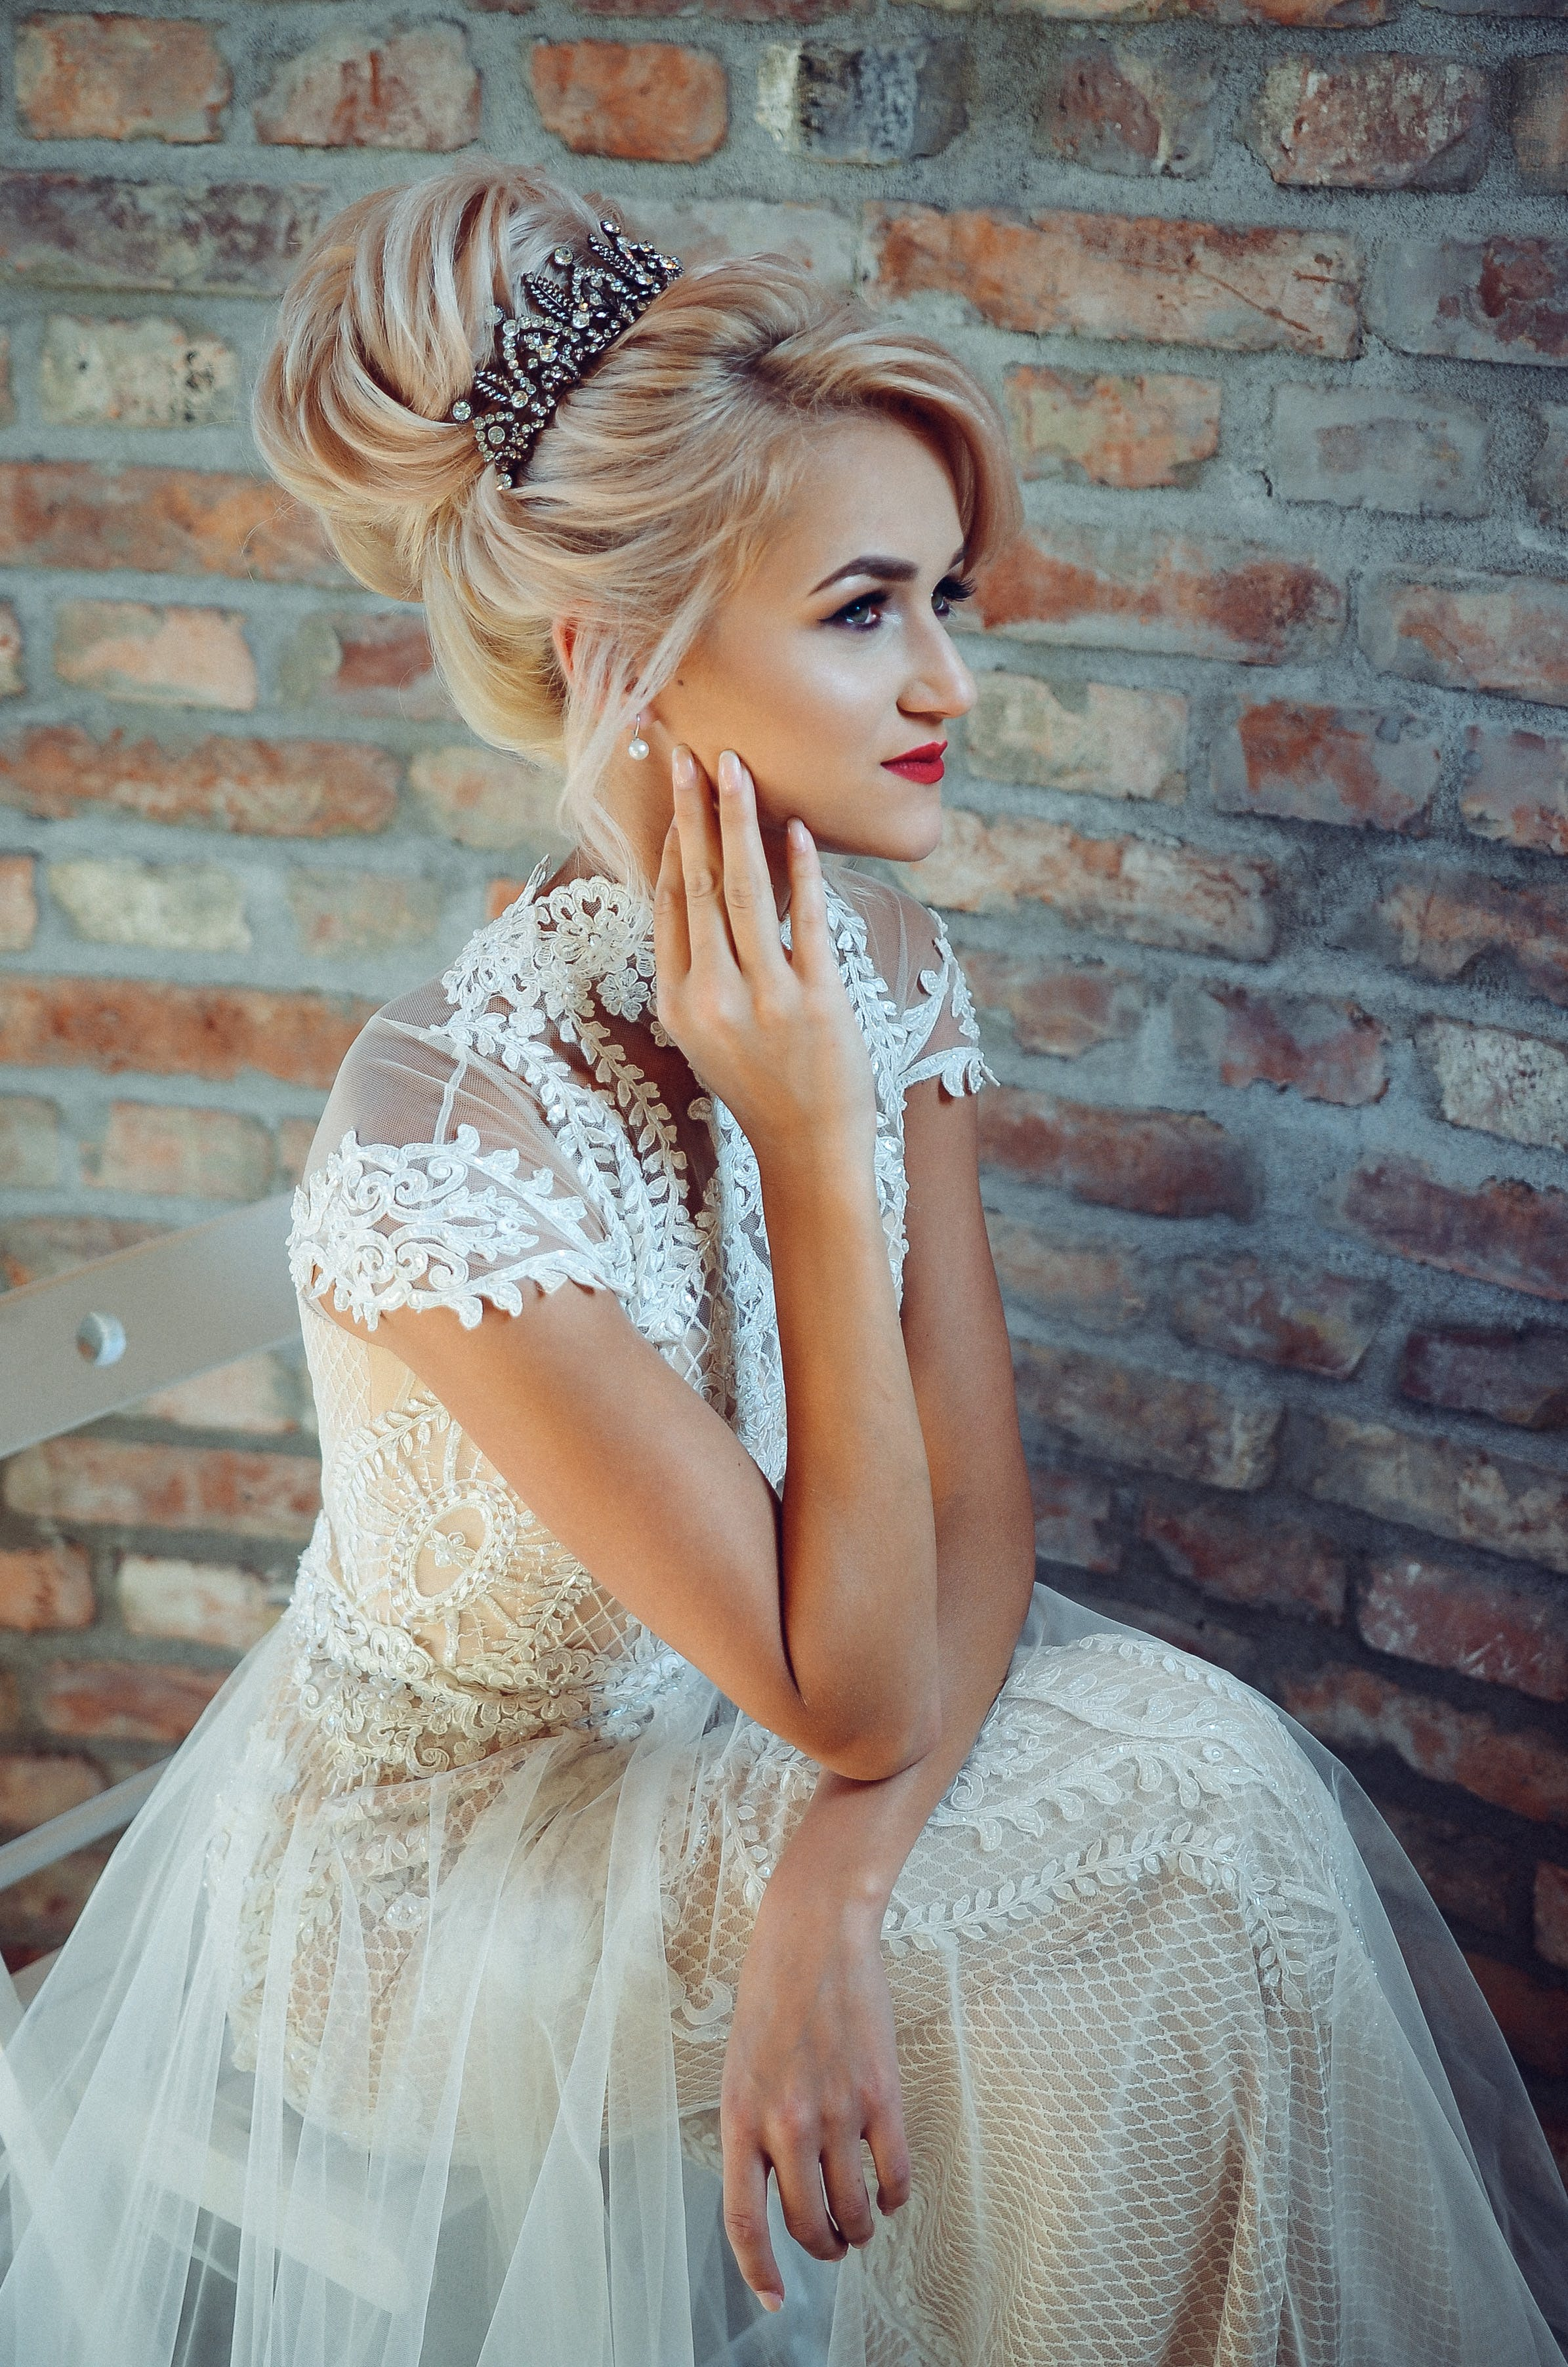 Woman in White Lace Dress Sits on Chair